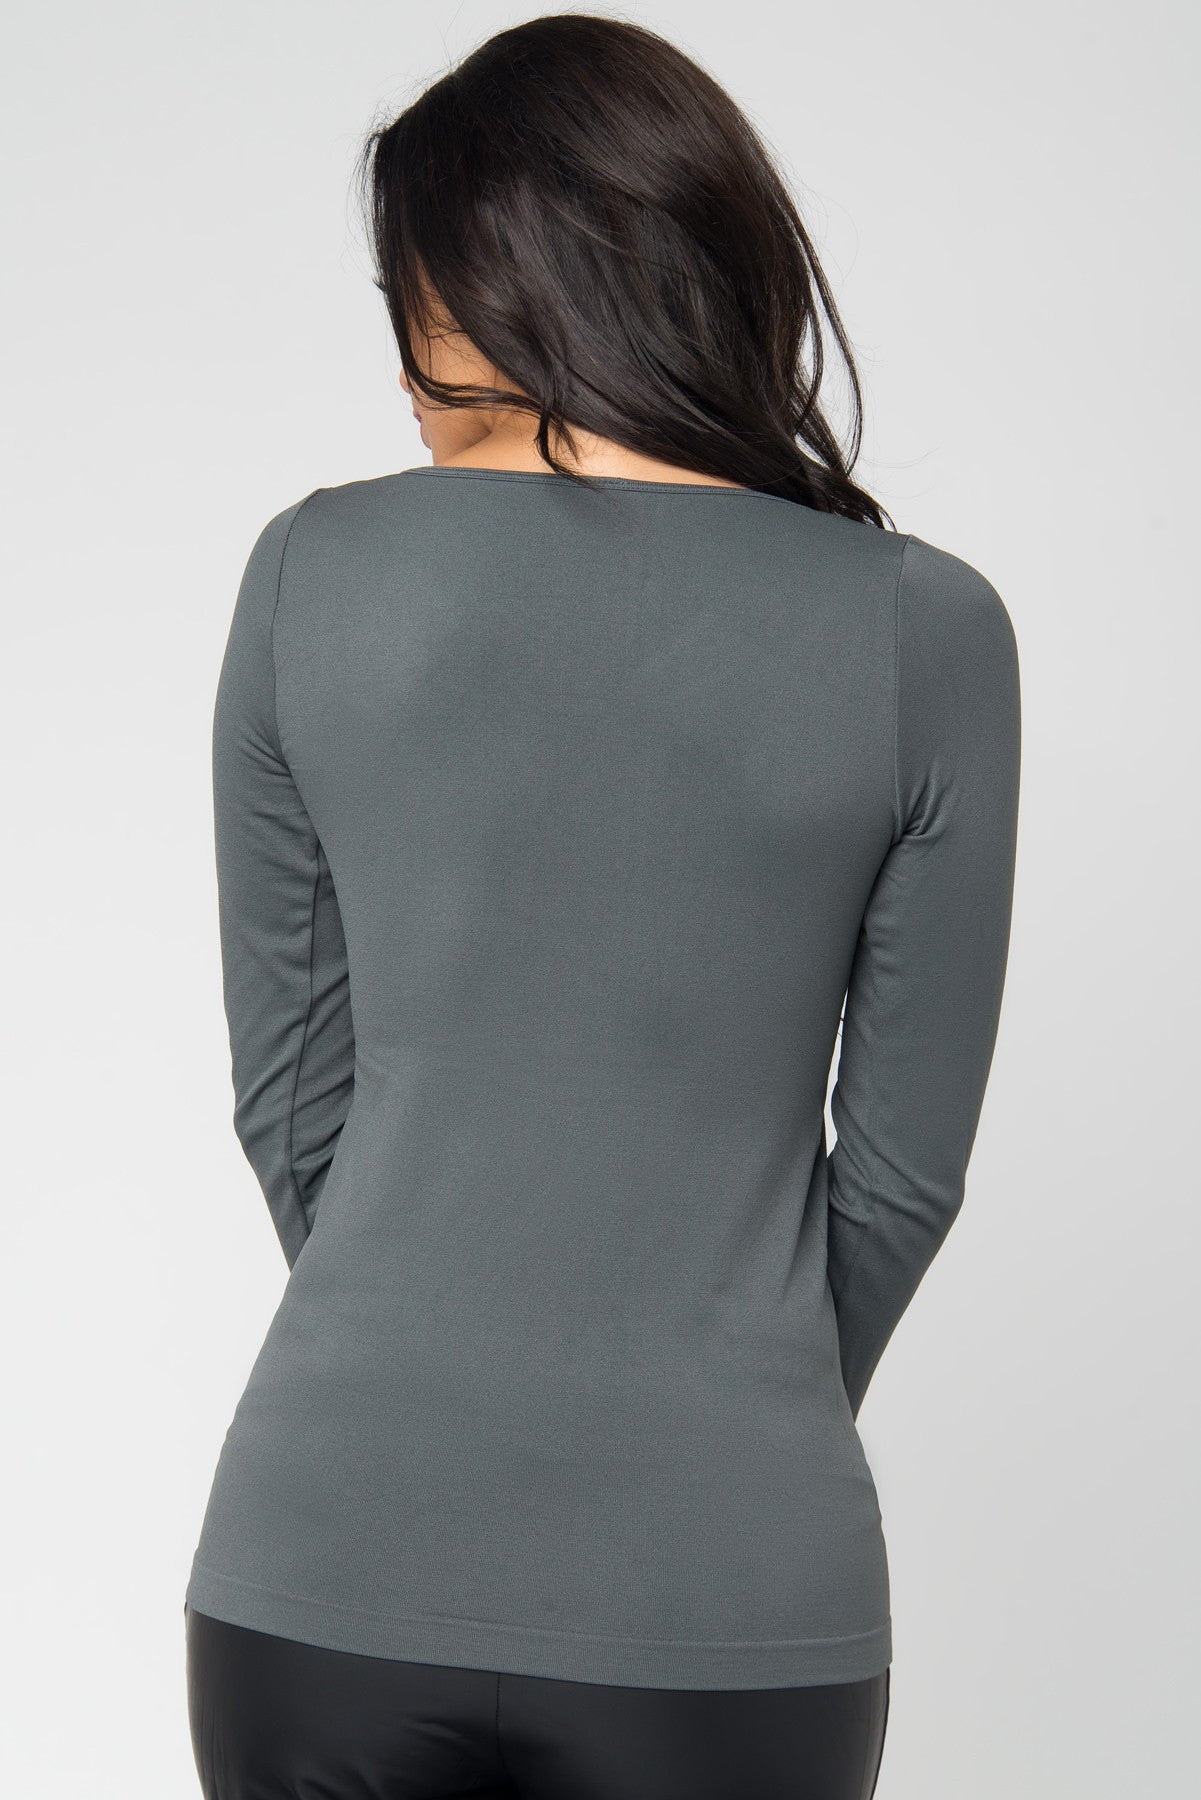 RESTOCK The Softest Blouse Ever Gray - Fashion Effect Store  - 3